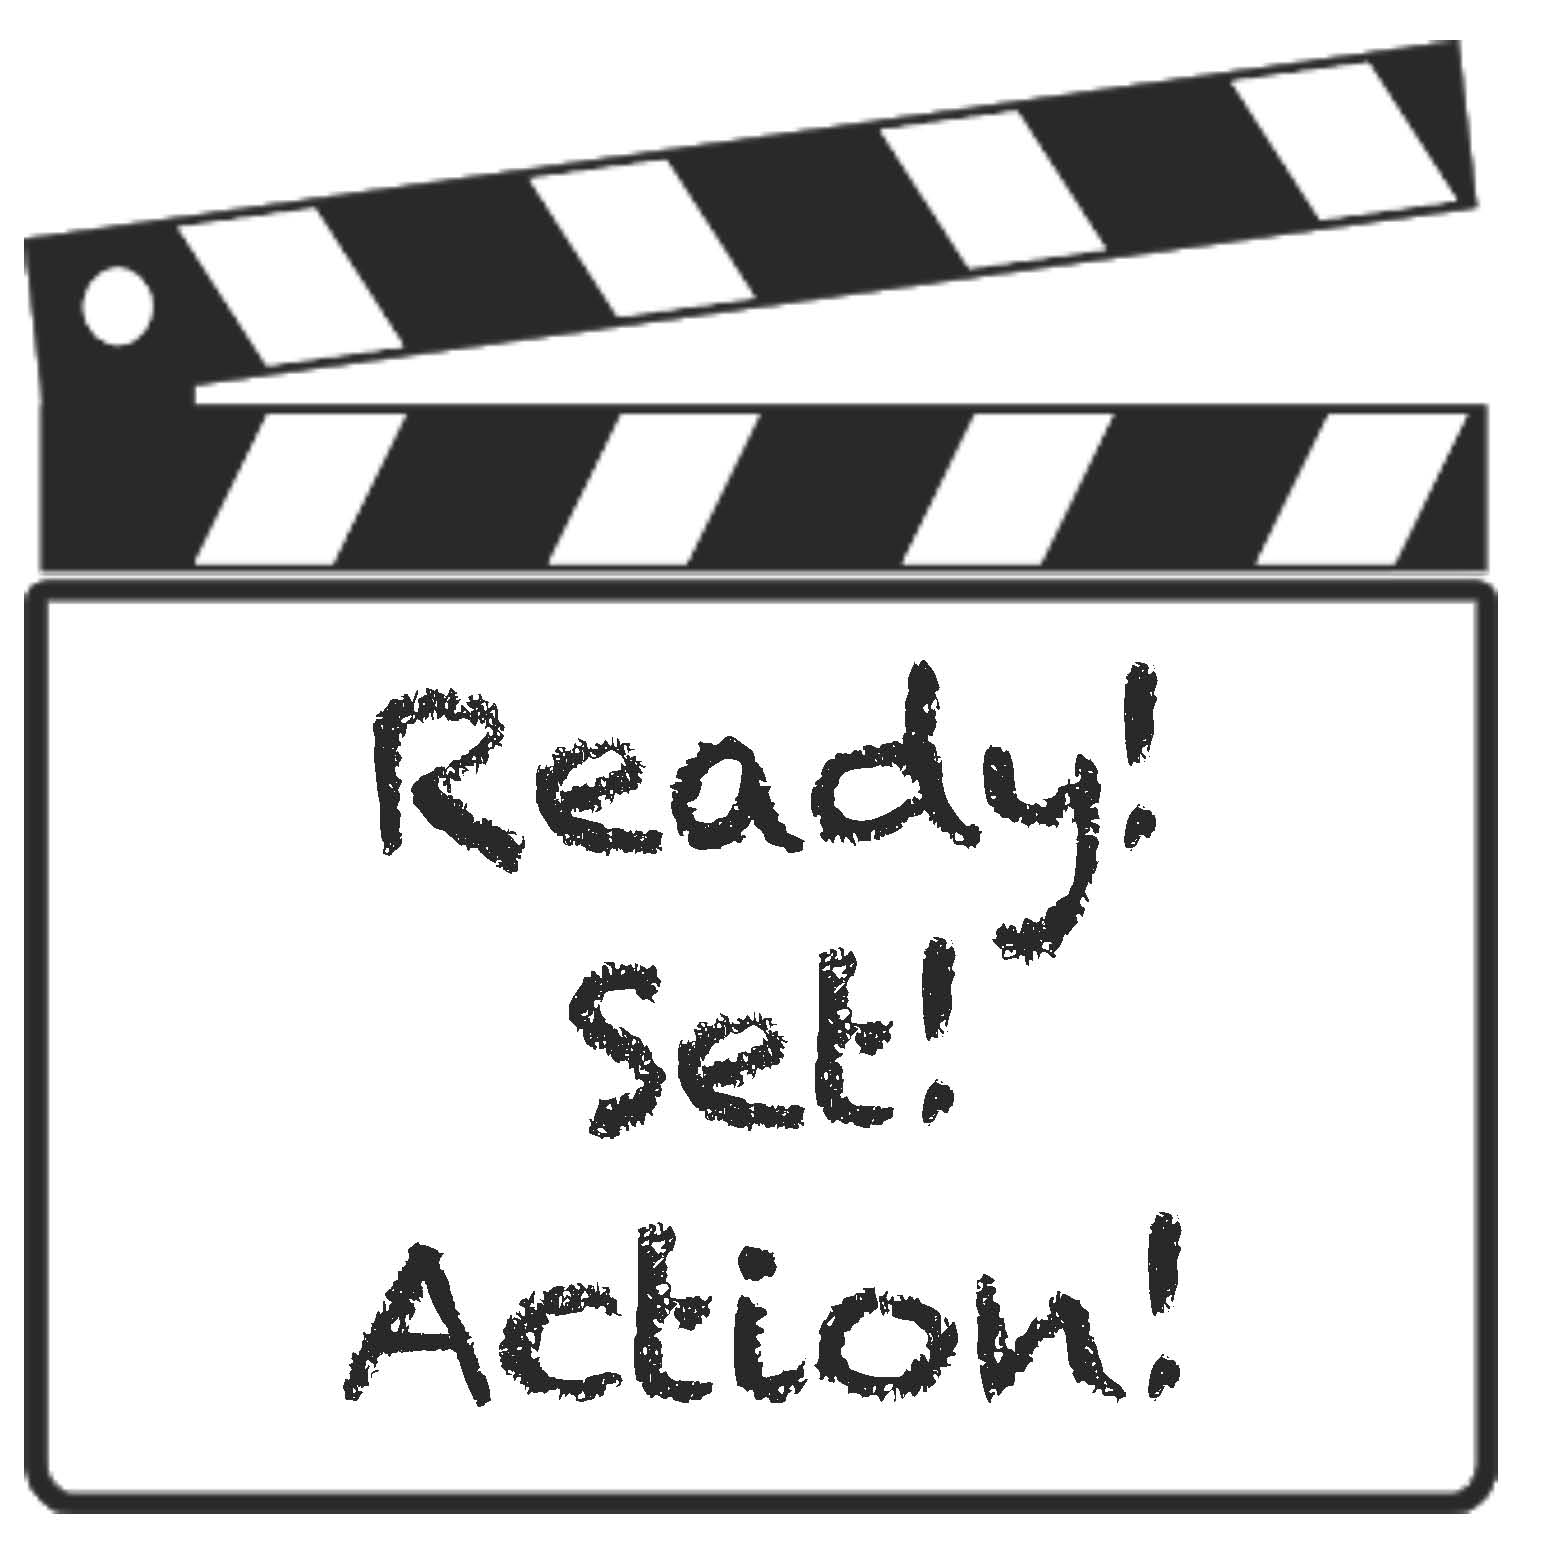 verb activities, grammar activities, ready set action, template for movie action slate, clacker pattern, grammar activities, grammar games, verb cards, verb games,